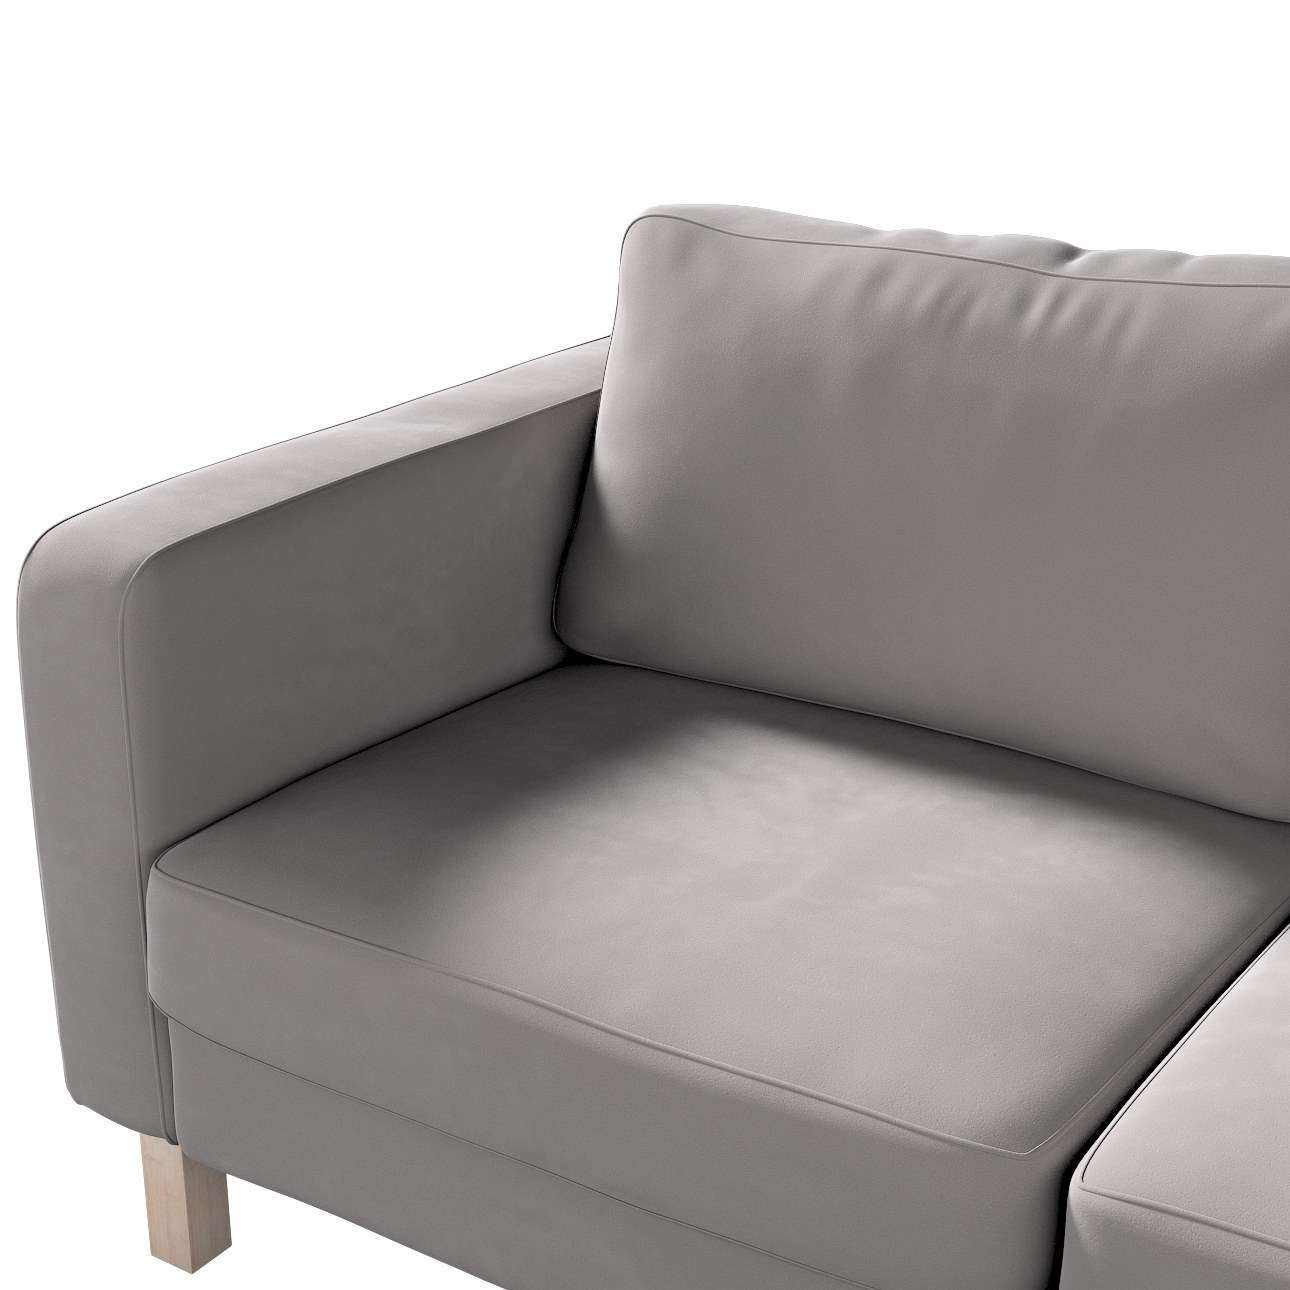 Karlstad 2-seater sofa cover in collection Velvet, fabric: 704-11